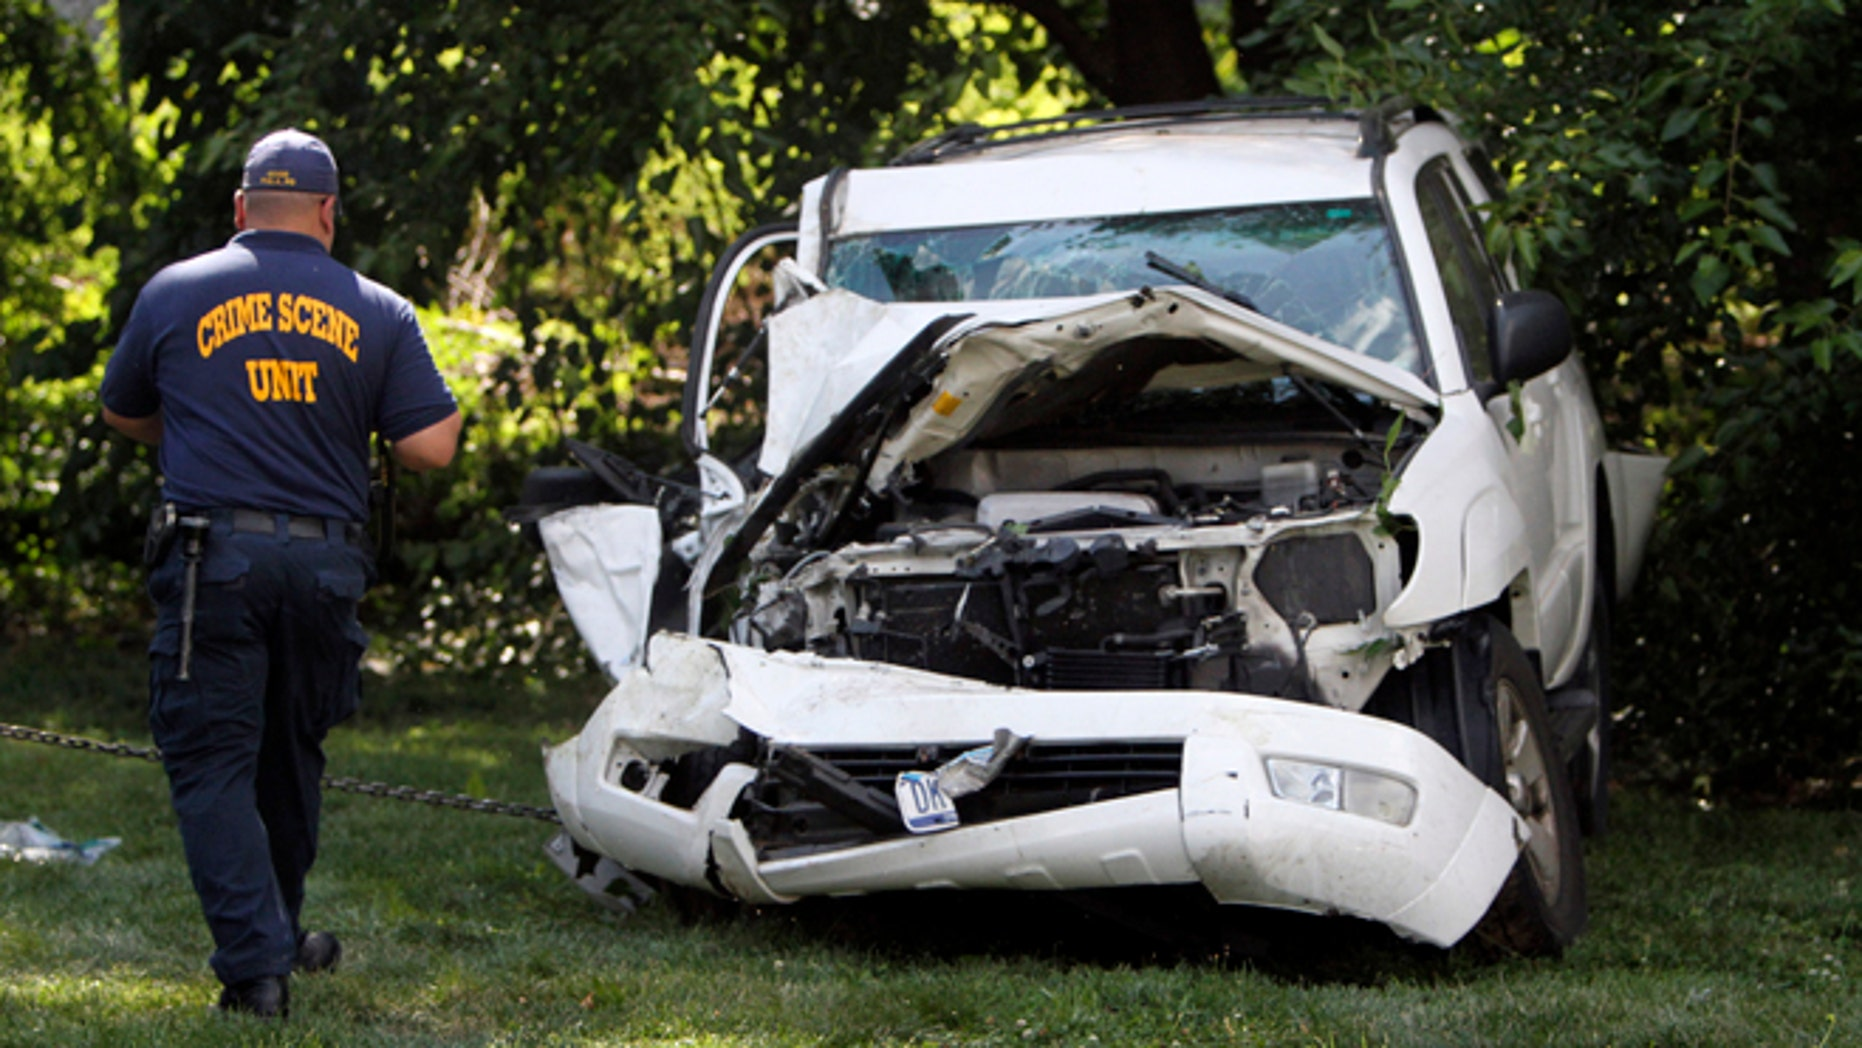 July 25, 2014: An investigator examines a heavily damaged SUV before it is towed from the scene of a fatal accident in North Philadelphia.